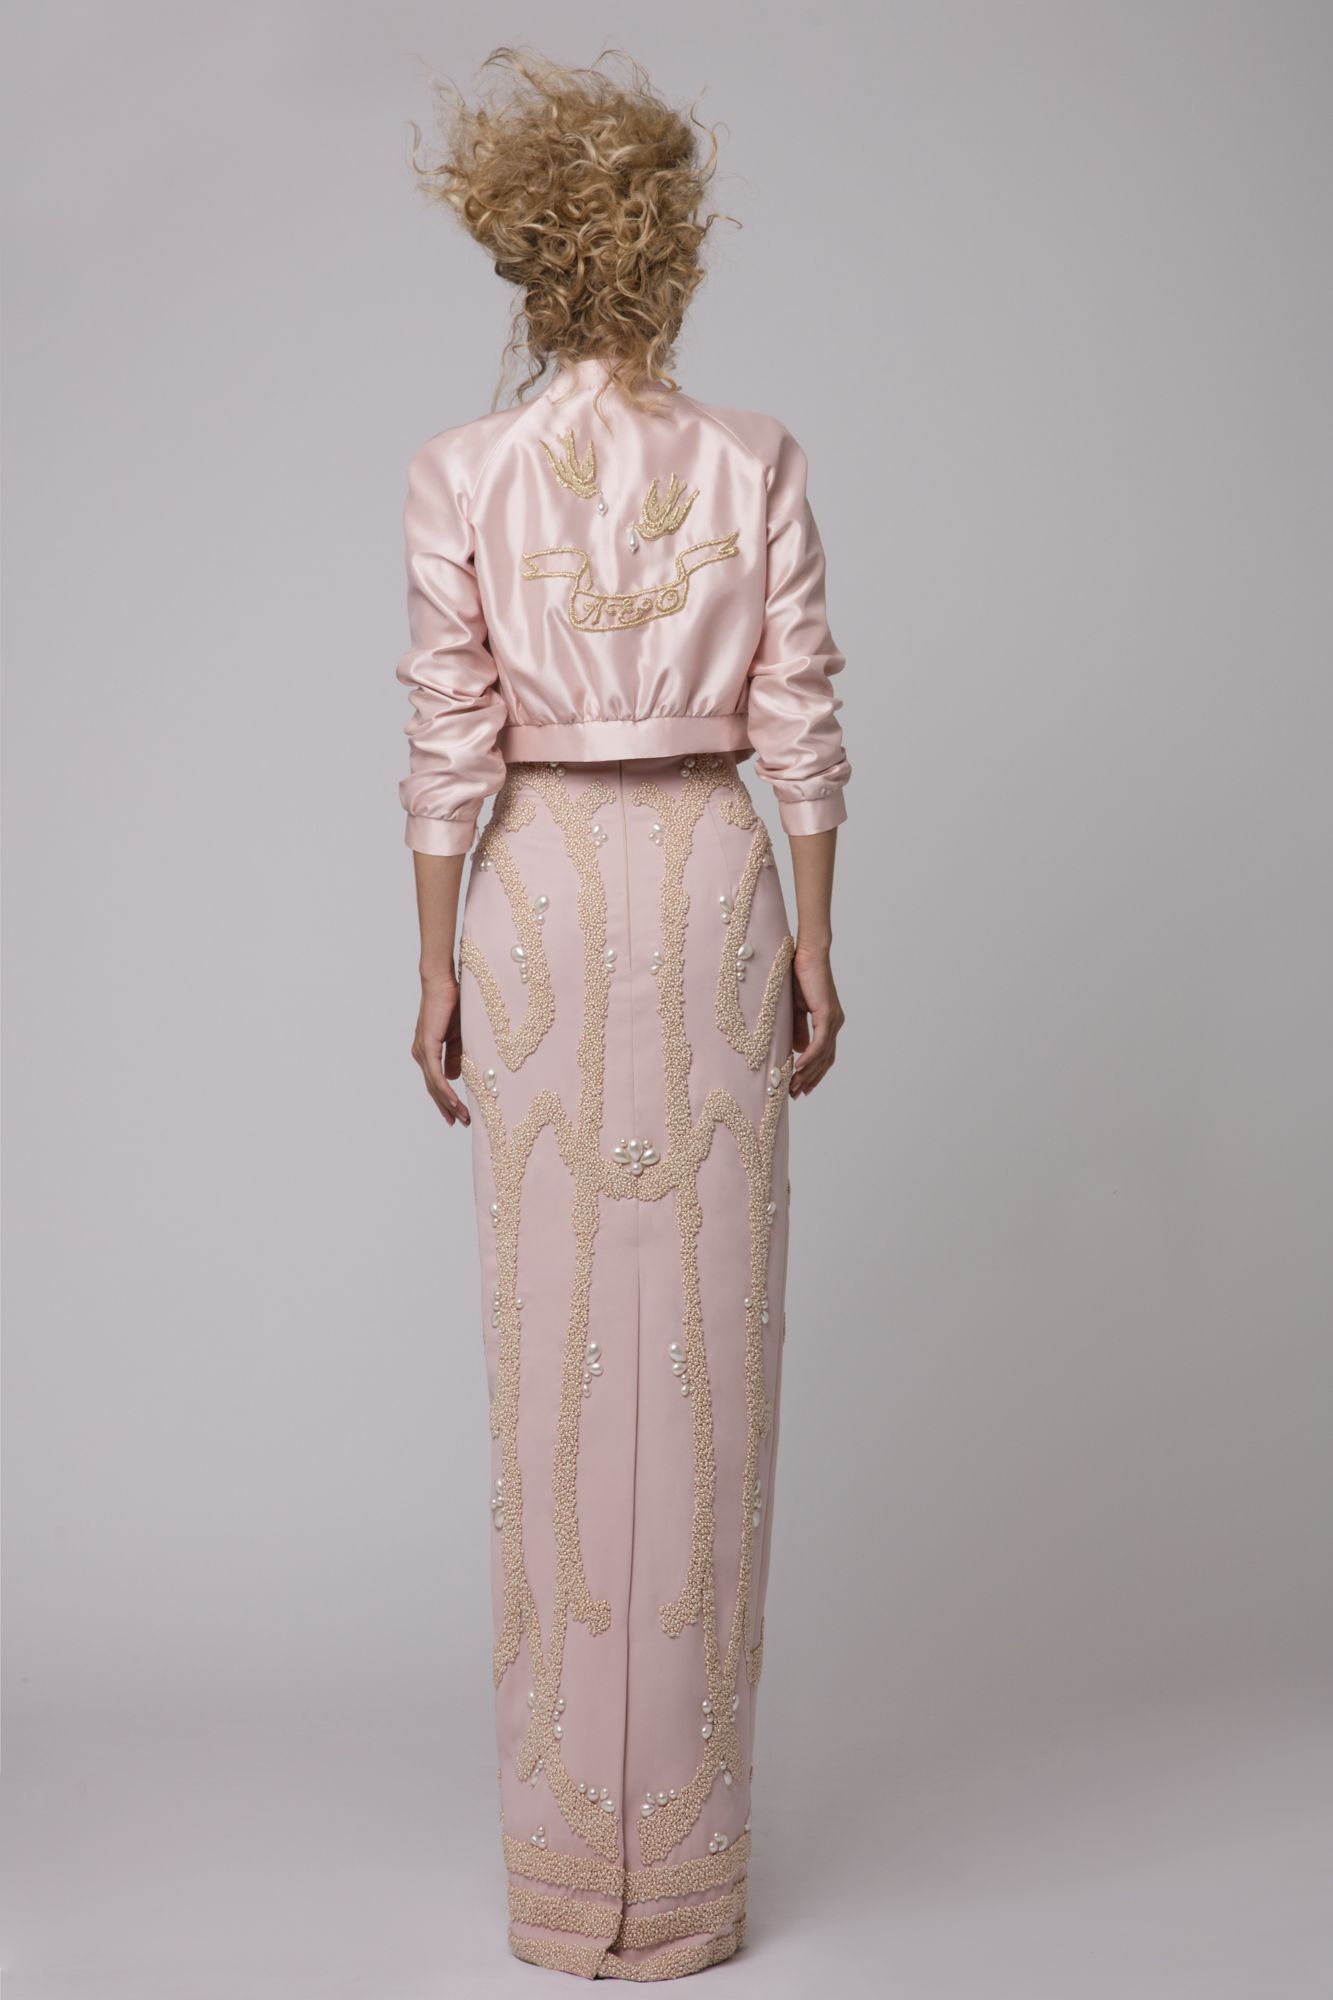 """Azzi & Osta Couture Fall/Winter 16/17   """"Promises Of Dawn""""    Pink, Bomber Jacket, Dress, Silk Duchess, Birds, Hand Embroidery, White Pearls, Metallic Gold Thread"""